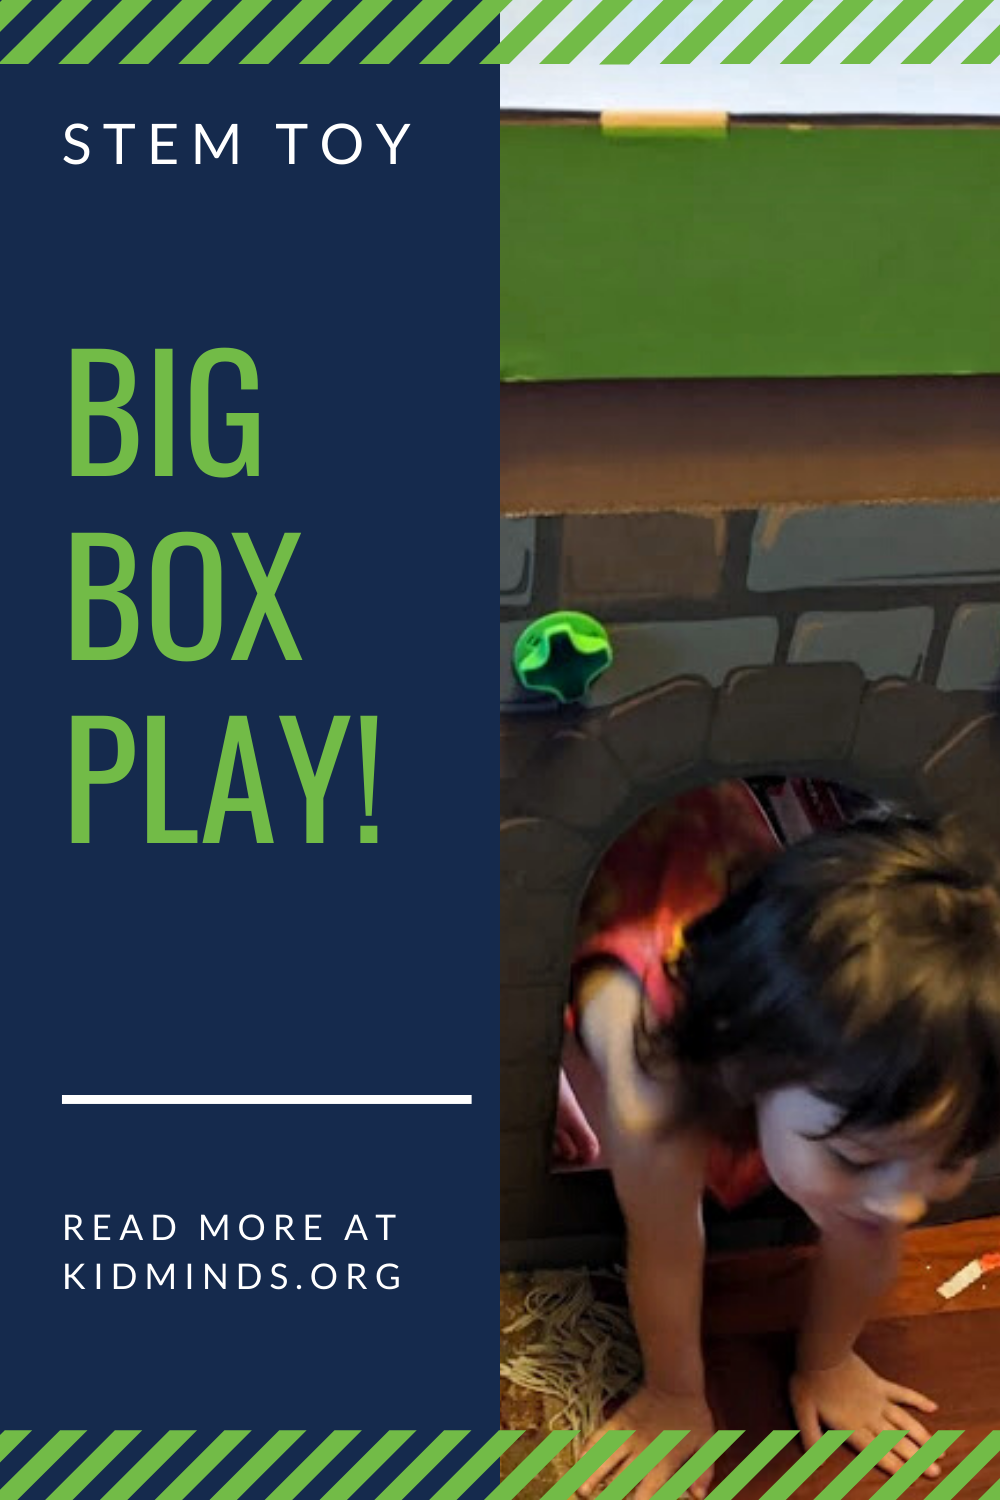 If you are looking to promote a creative, screen-free, unstructured type of child-directed play this summer, this review of BigBoxPlay might help. #kidsactivities #boxplay #STEM #laughingkidslearn #screenfreeplay